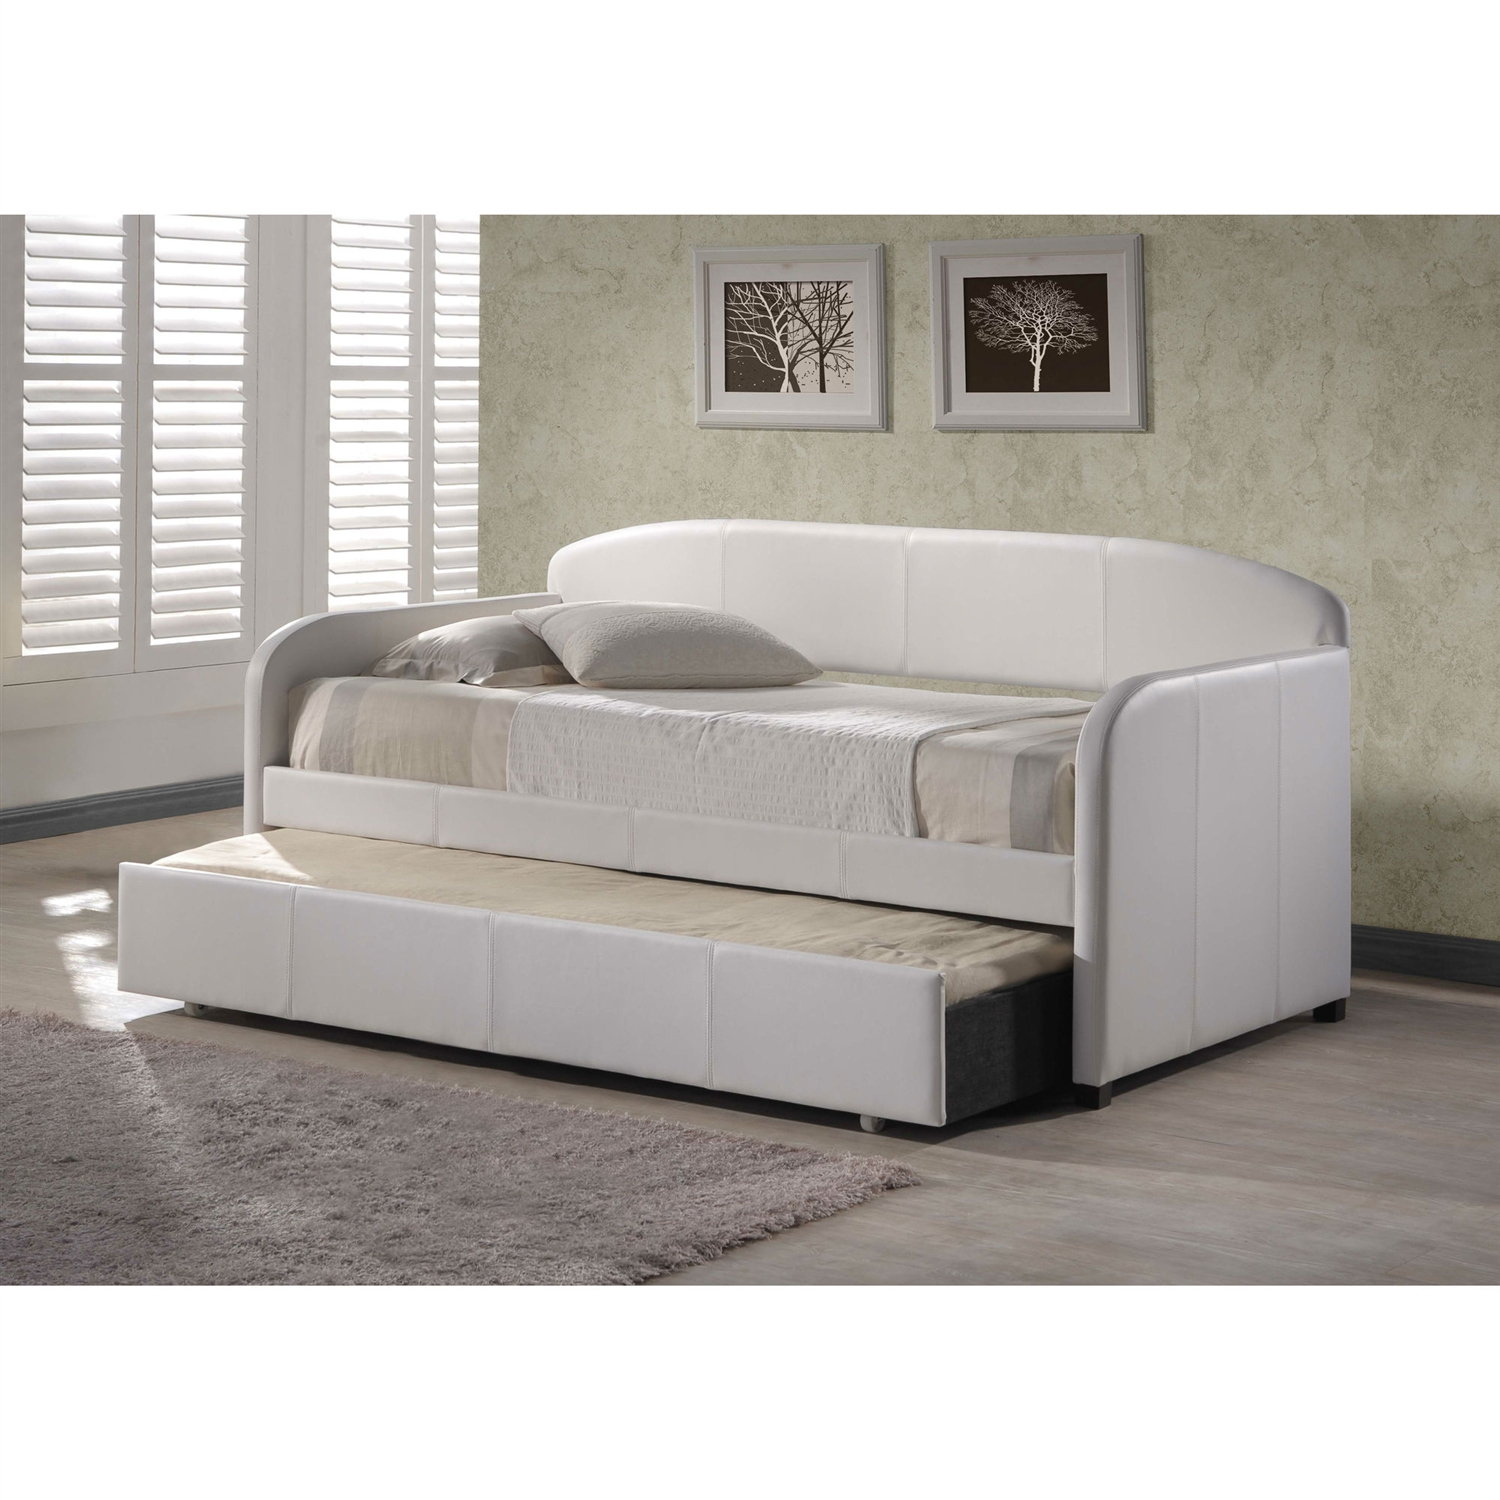 Creativeworks home decor daybeds 2 - What you need to know about trundle beds ...